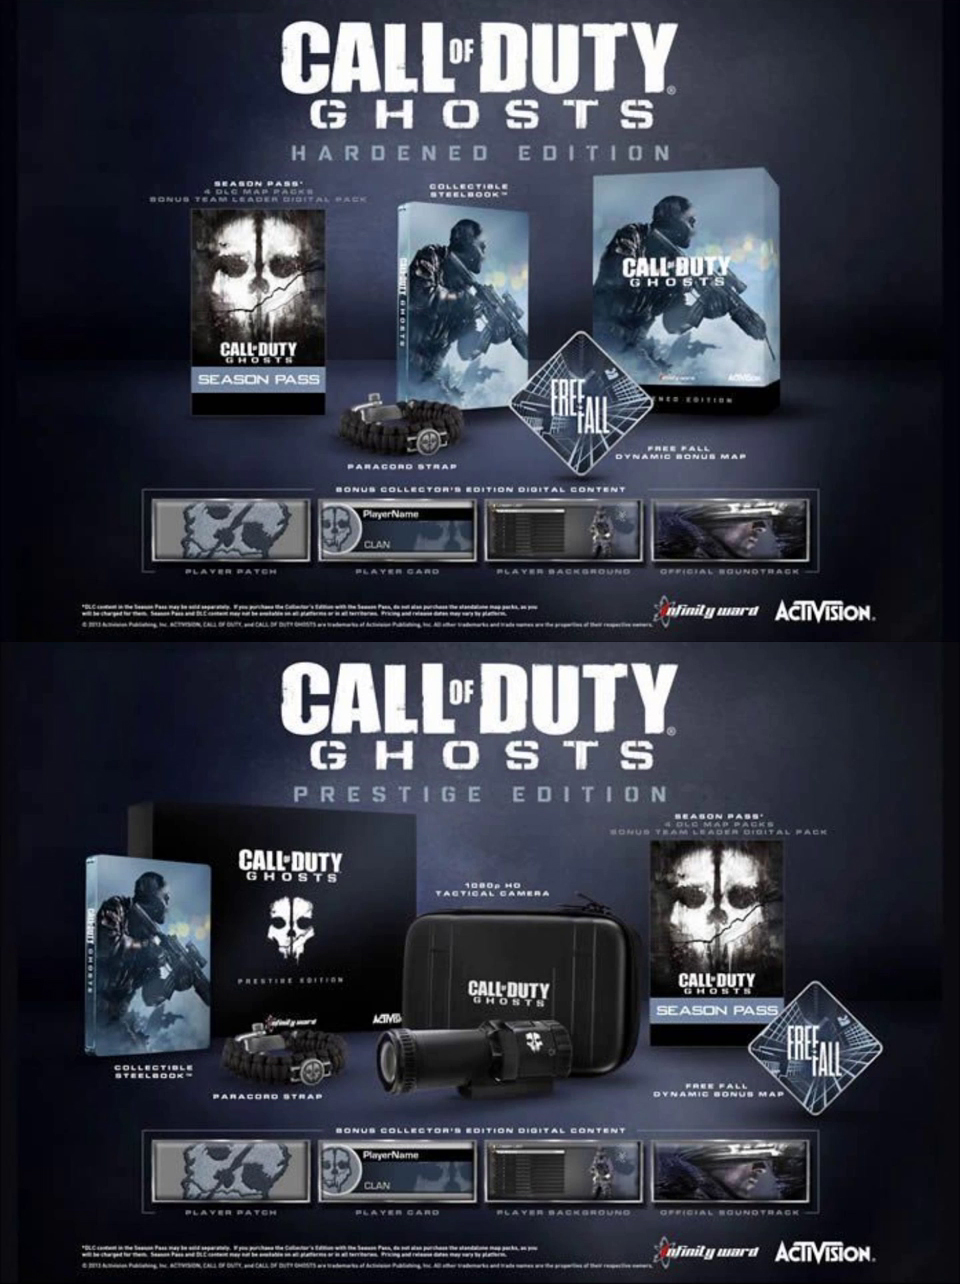 http://www.gamerfocus.co/wp-content/uploads/2013/08/Ediciones-Ghosts.jpg